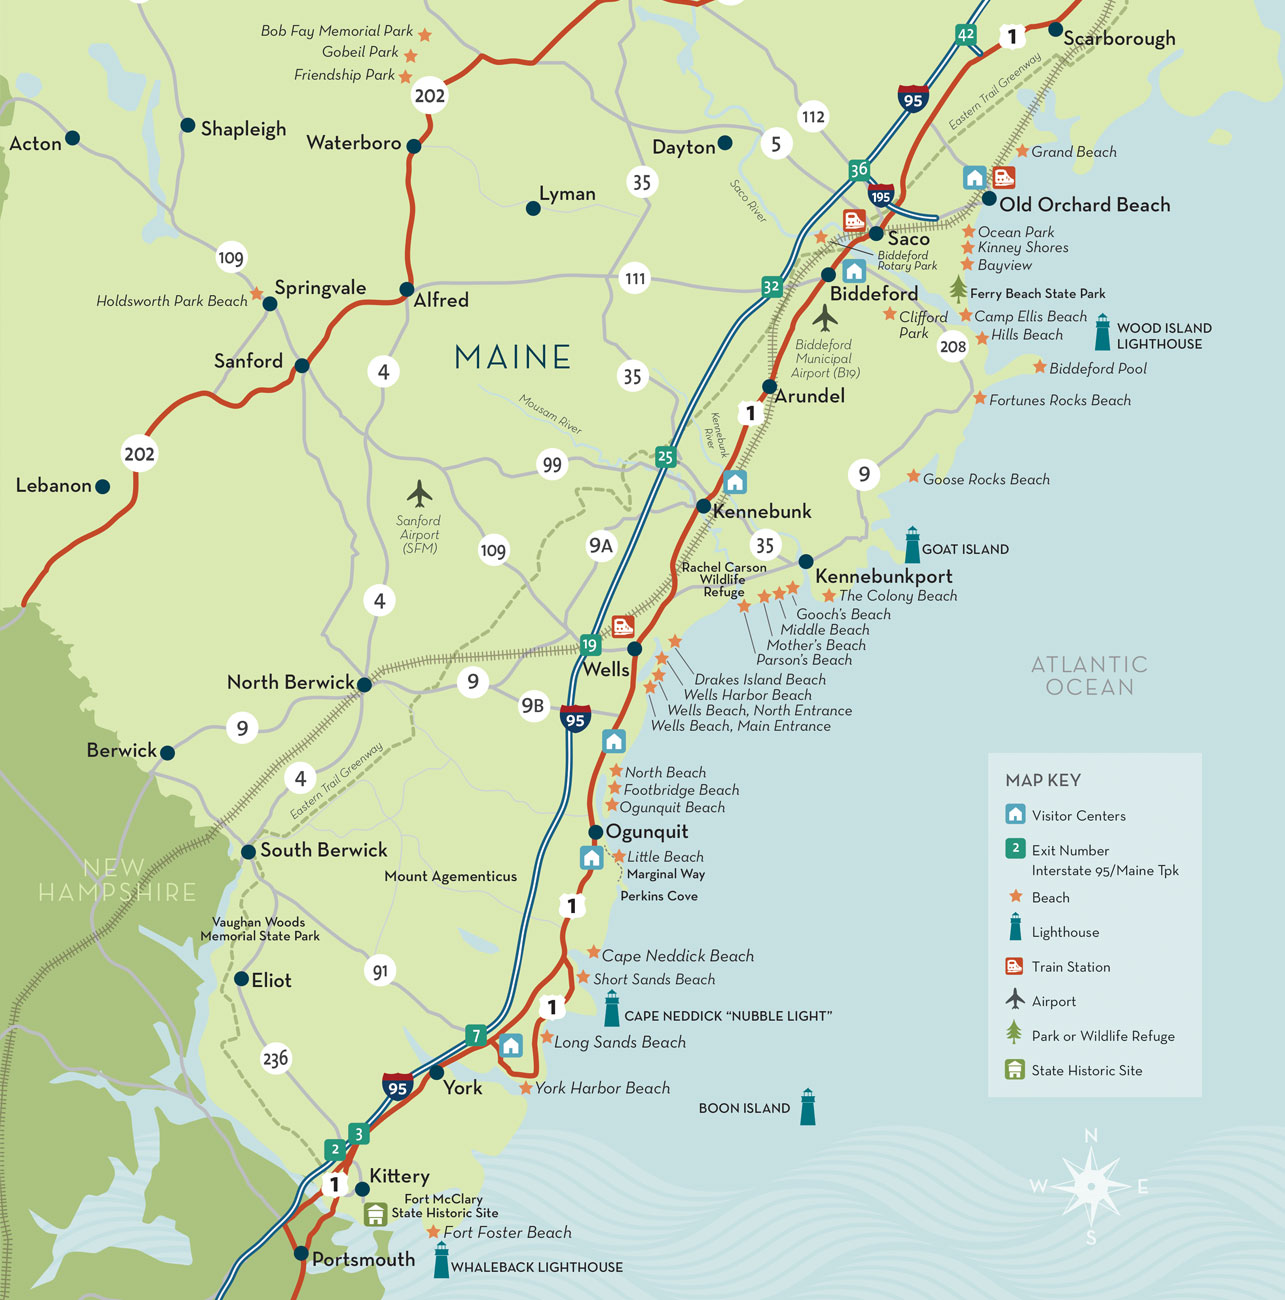 Map Of Maine Coastline Towns.Maine Beach Vacation Towns Ogunquit Kennebunk York Biddeford